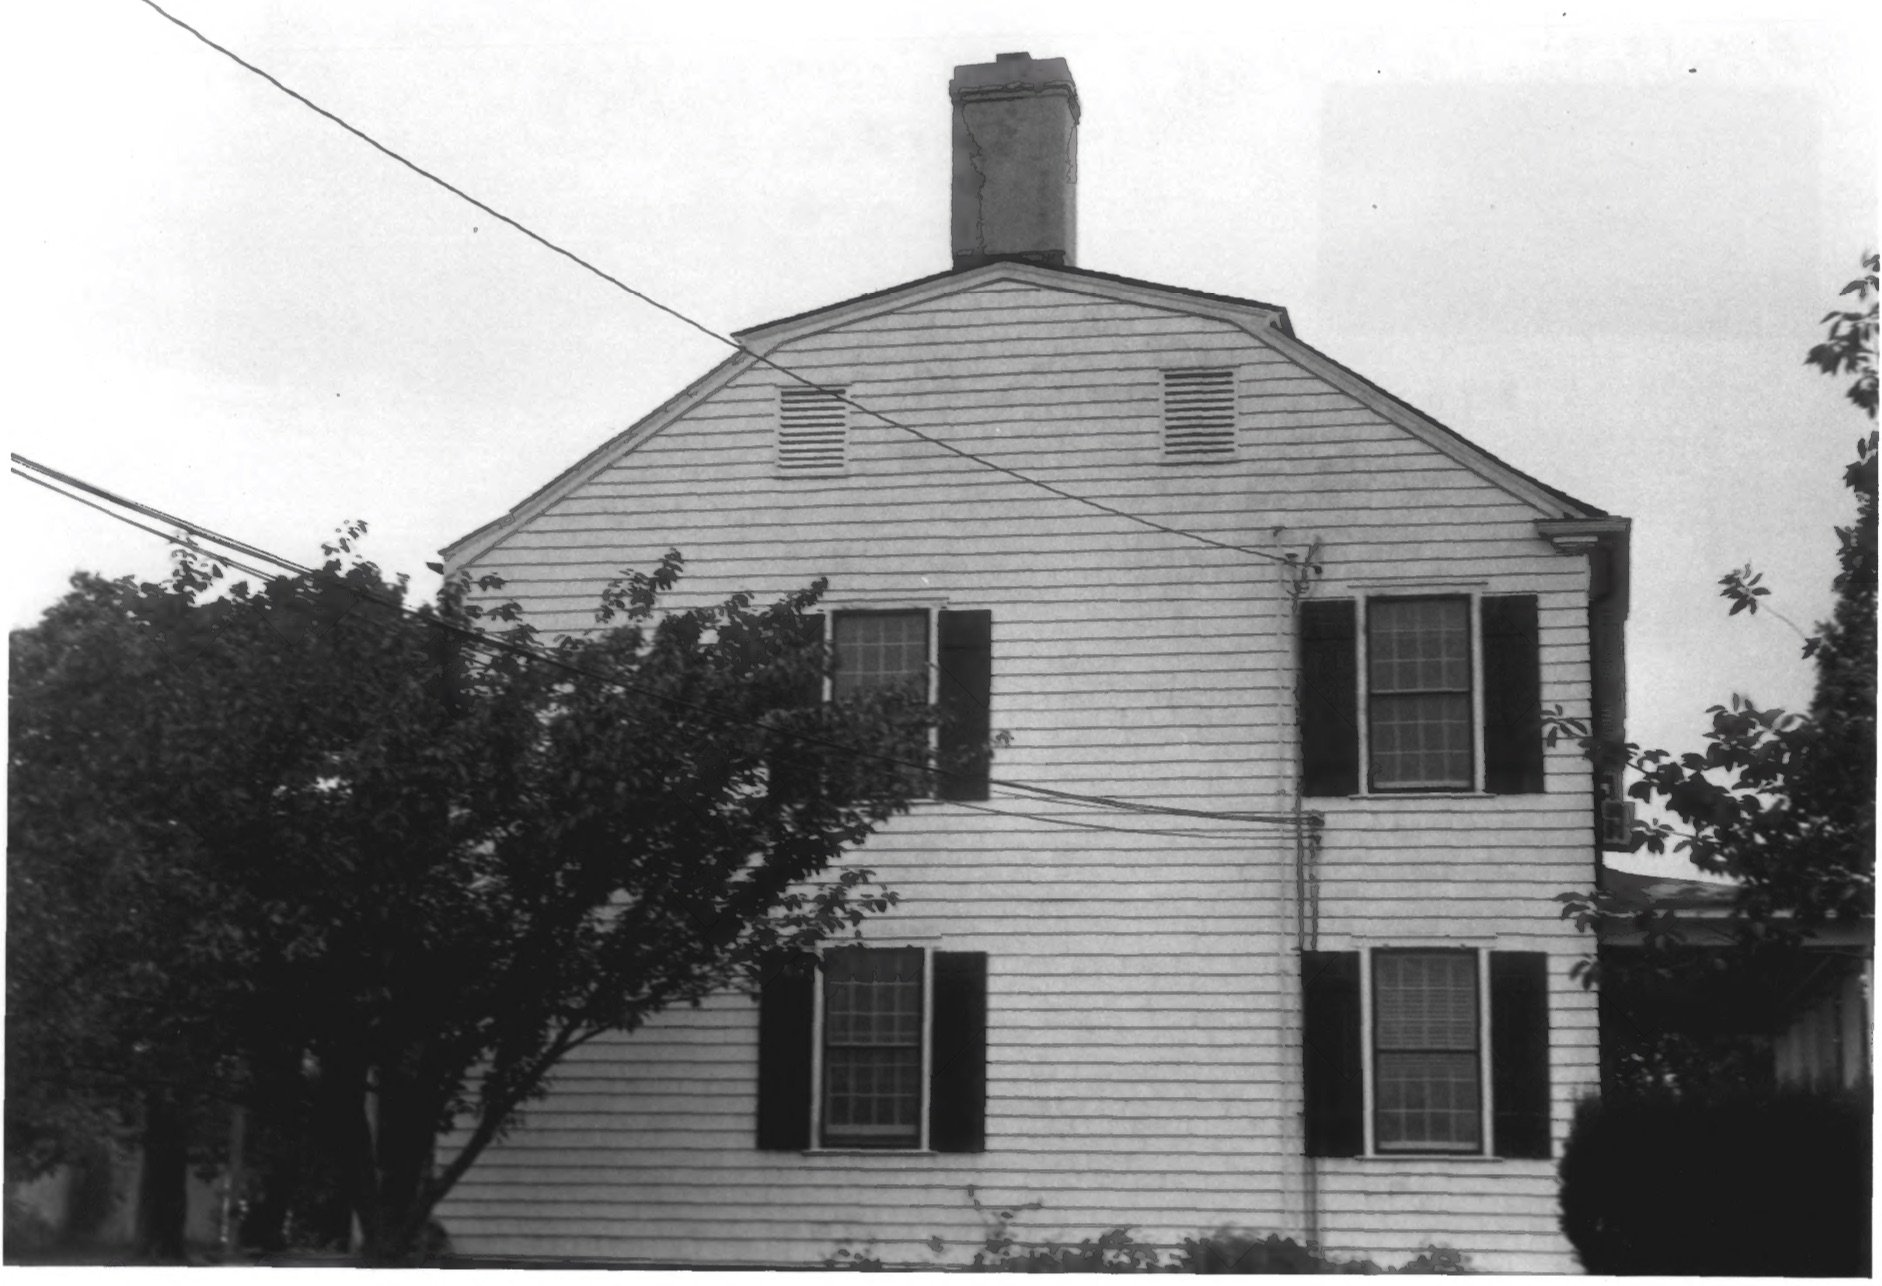 Rear Facade of the Cove House in 1979 by D. Ransom, Part of the NPS NRHP Photographic Collection on the Cove House